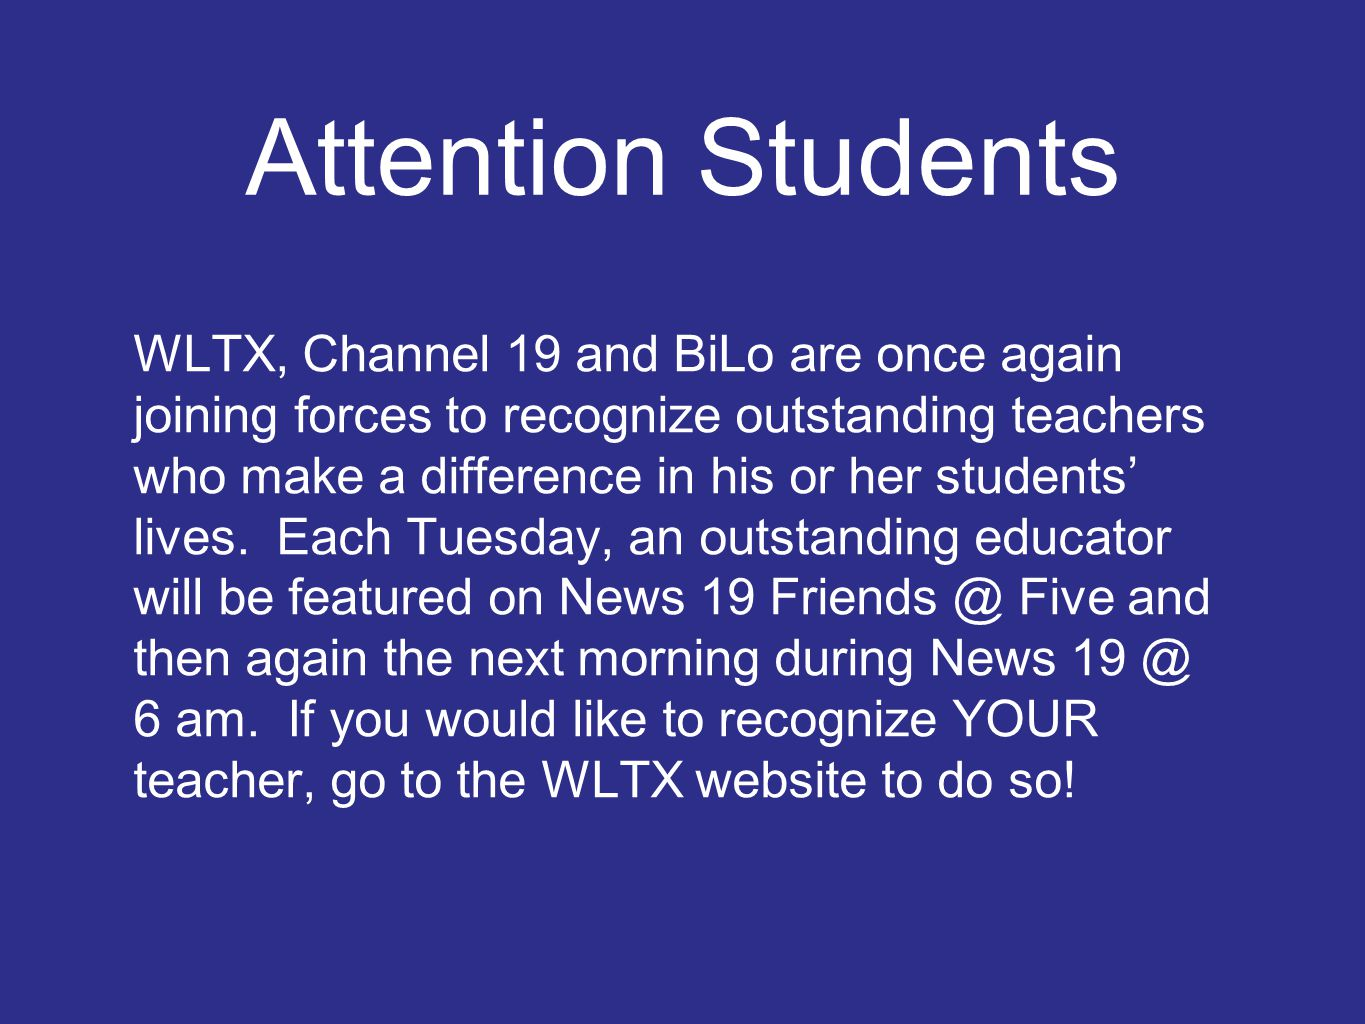 Attention Students WLTX, Channel 19 and BiLo are once again joining forces to recognize outstanding teachers who make a difference in his or her students' lives.